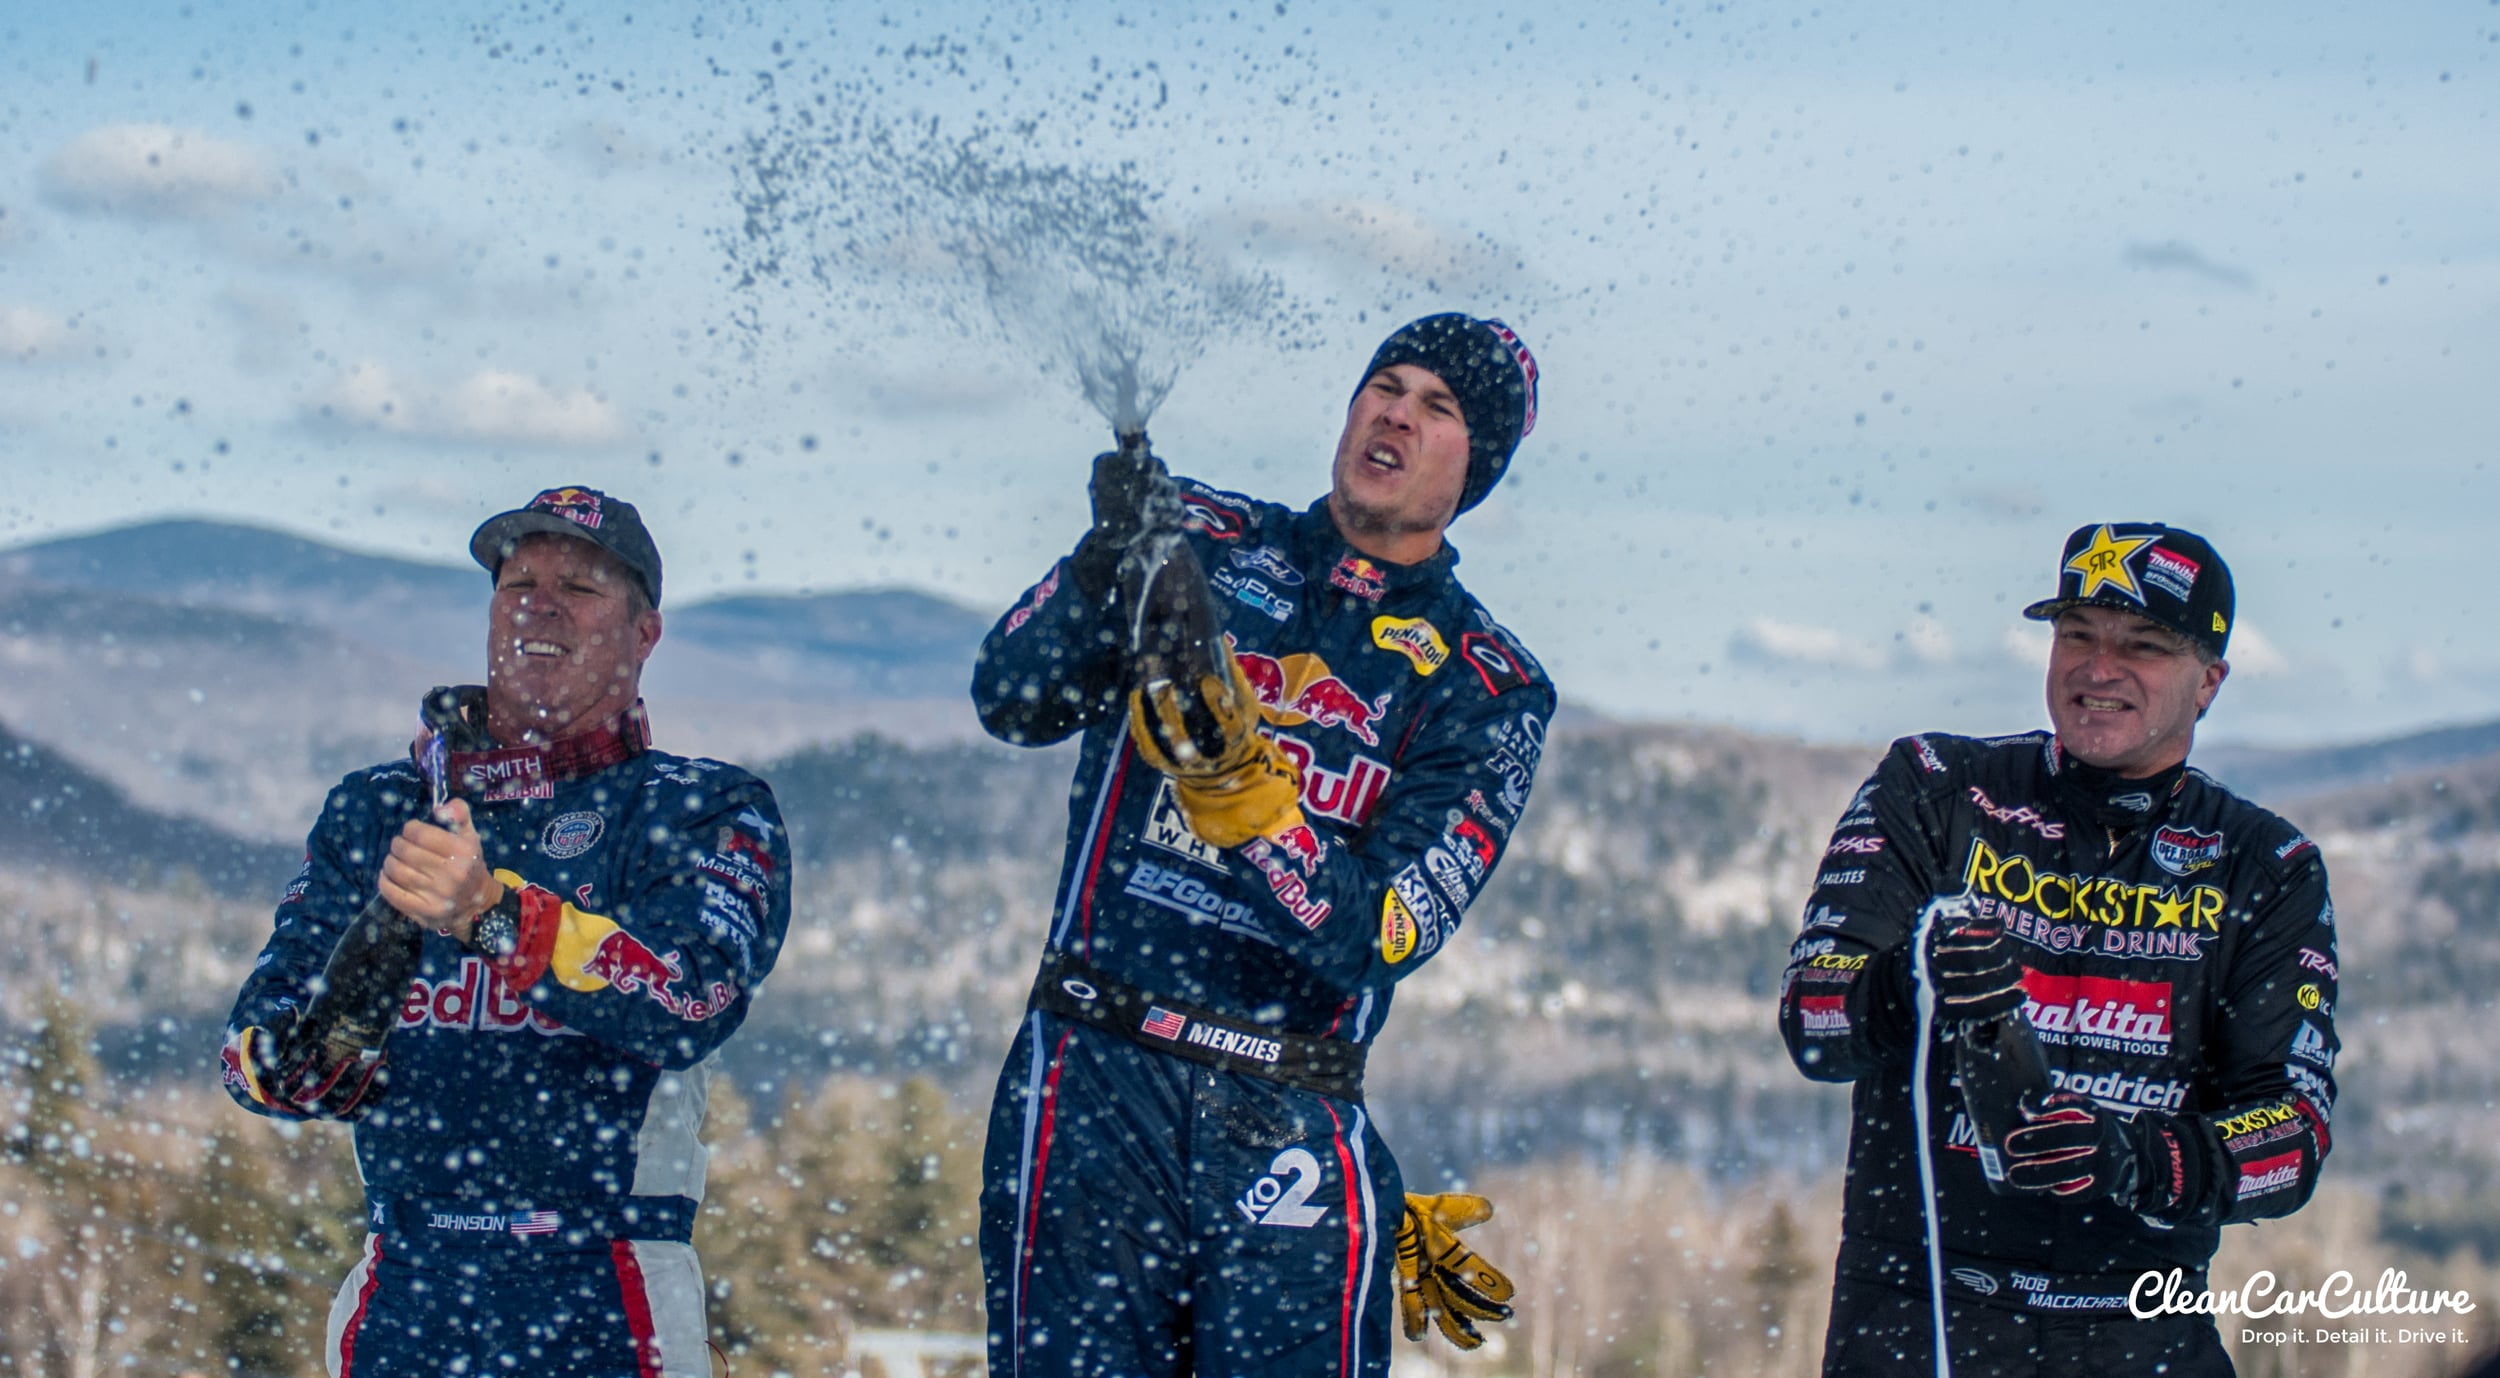 FrozenRush20162-0528.jpg